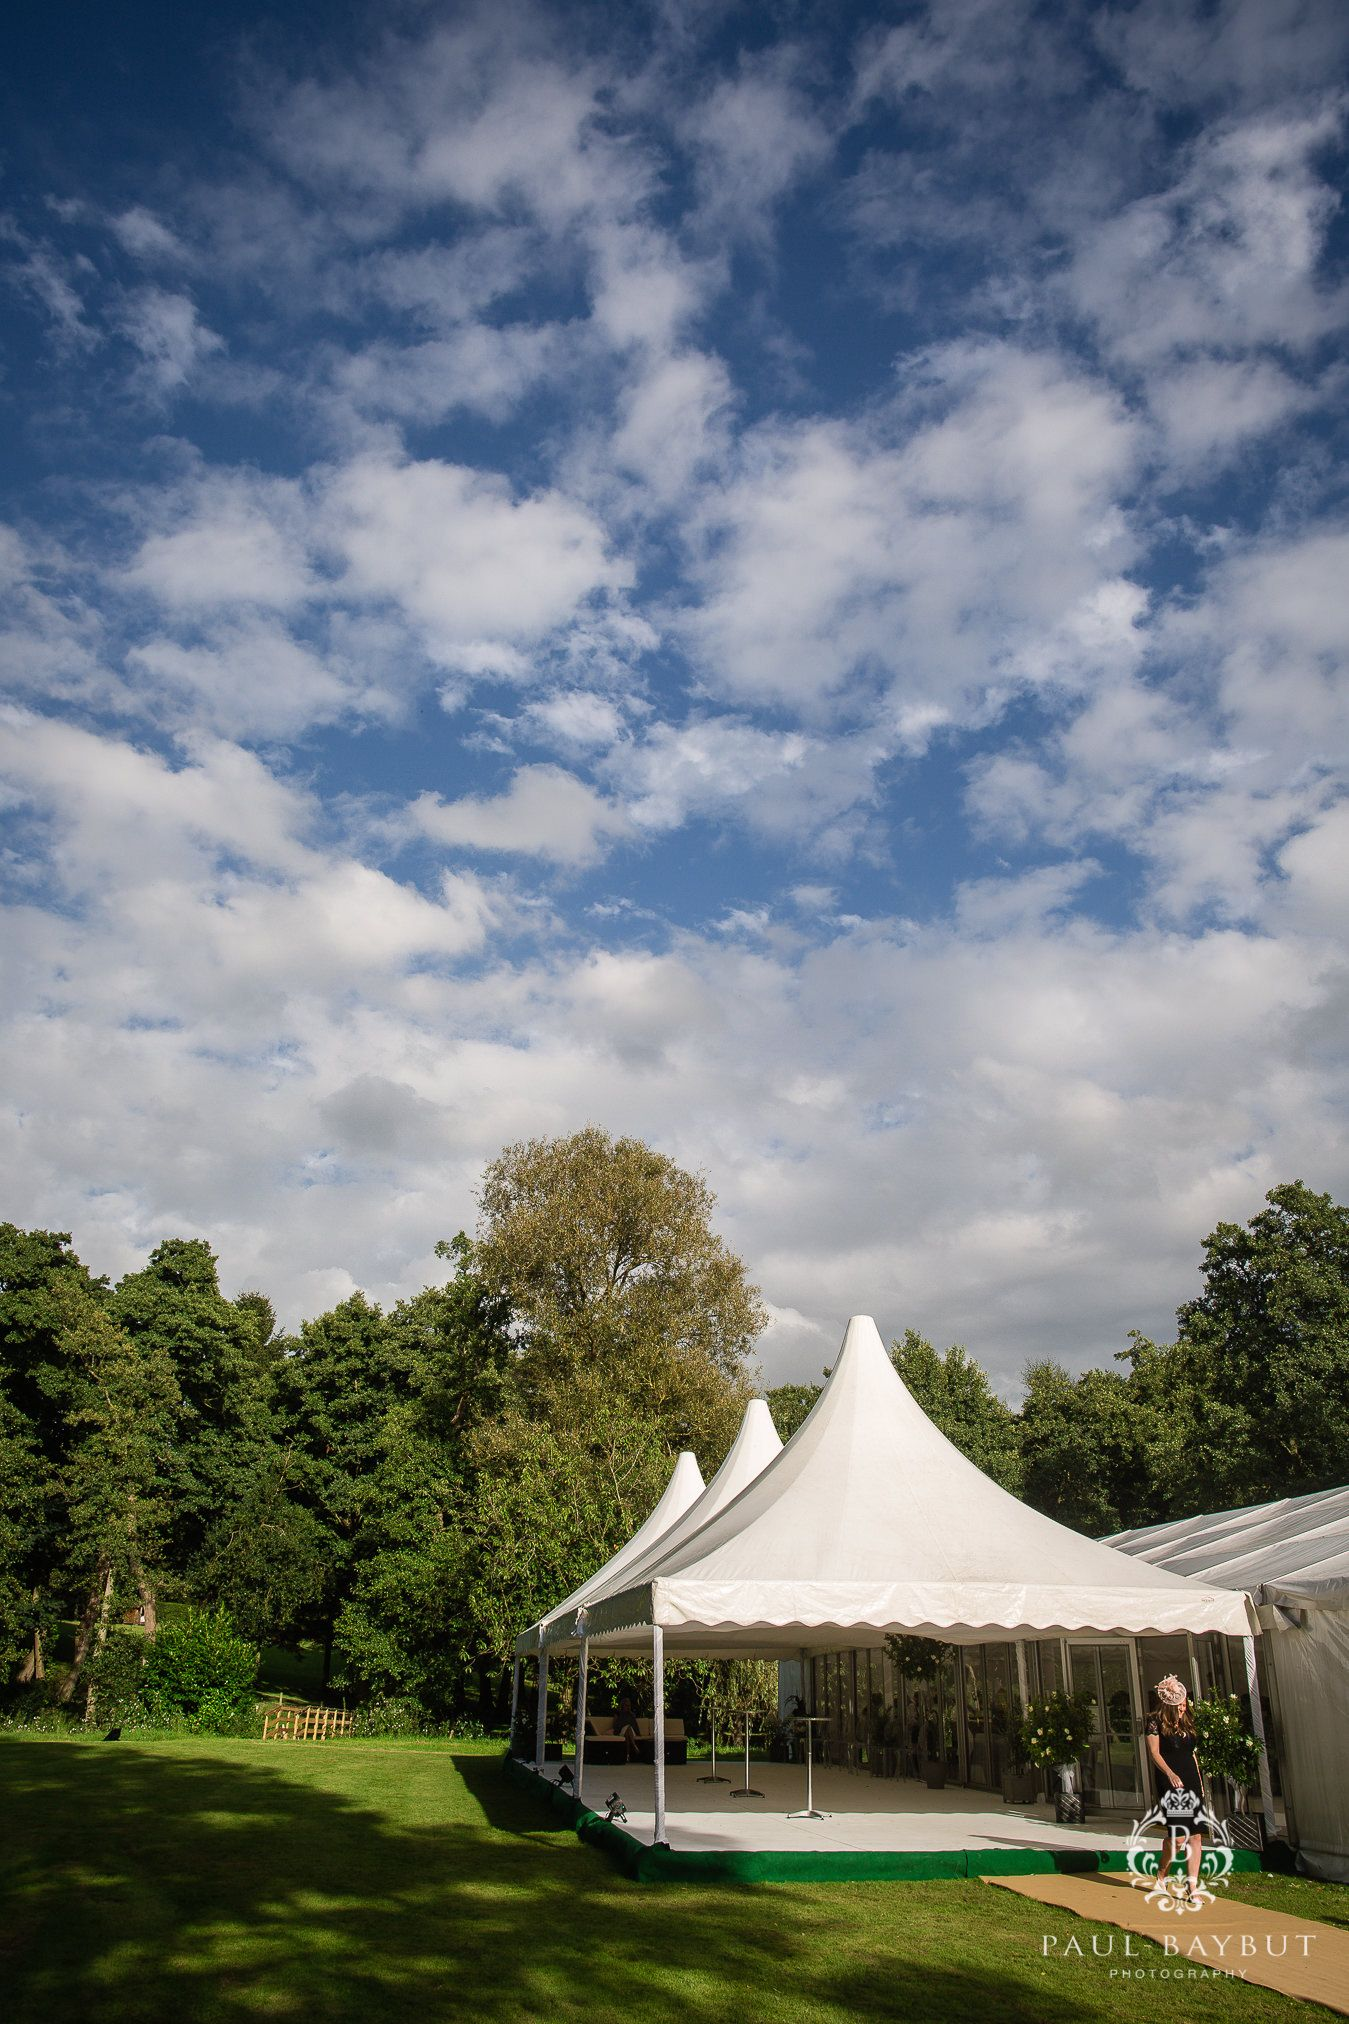 Cheshire wedding marquee venue on a green lawn with sunny blue skies and fluffy white clouds